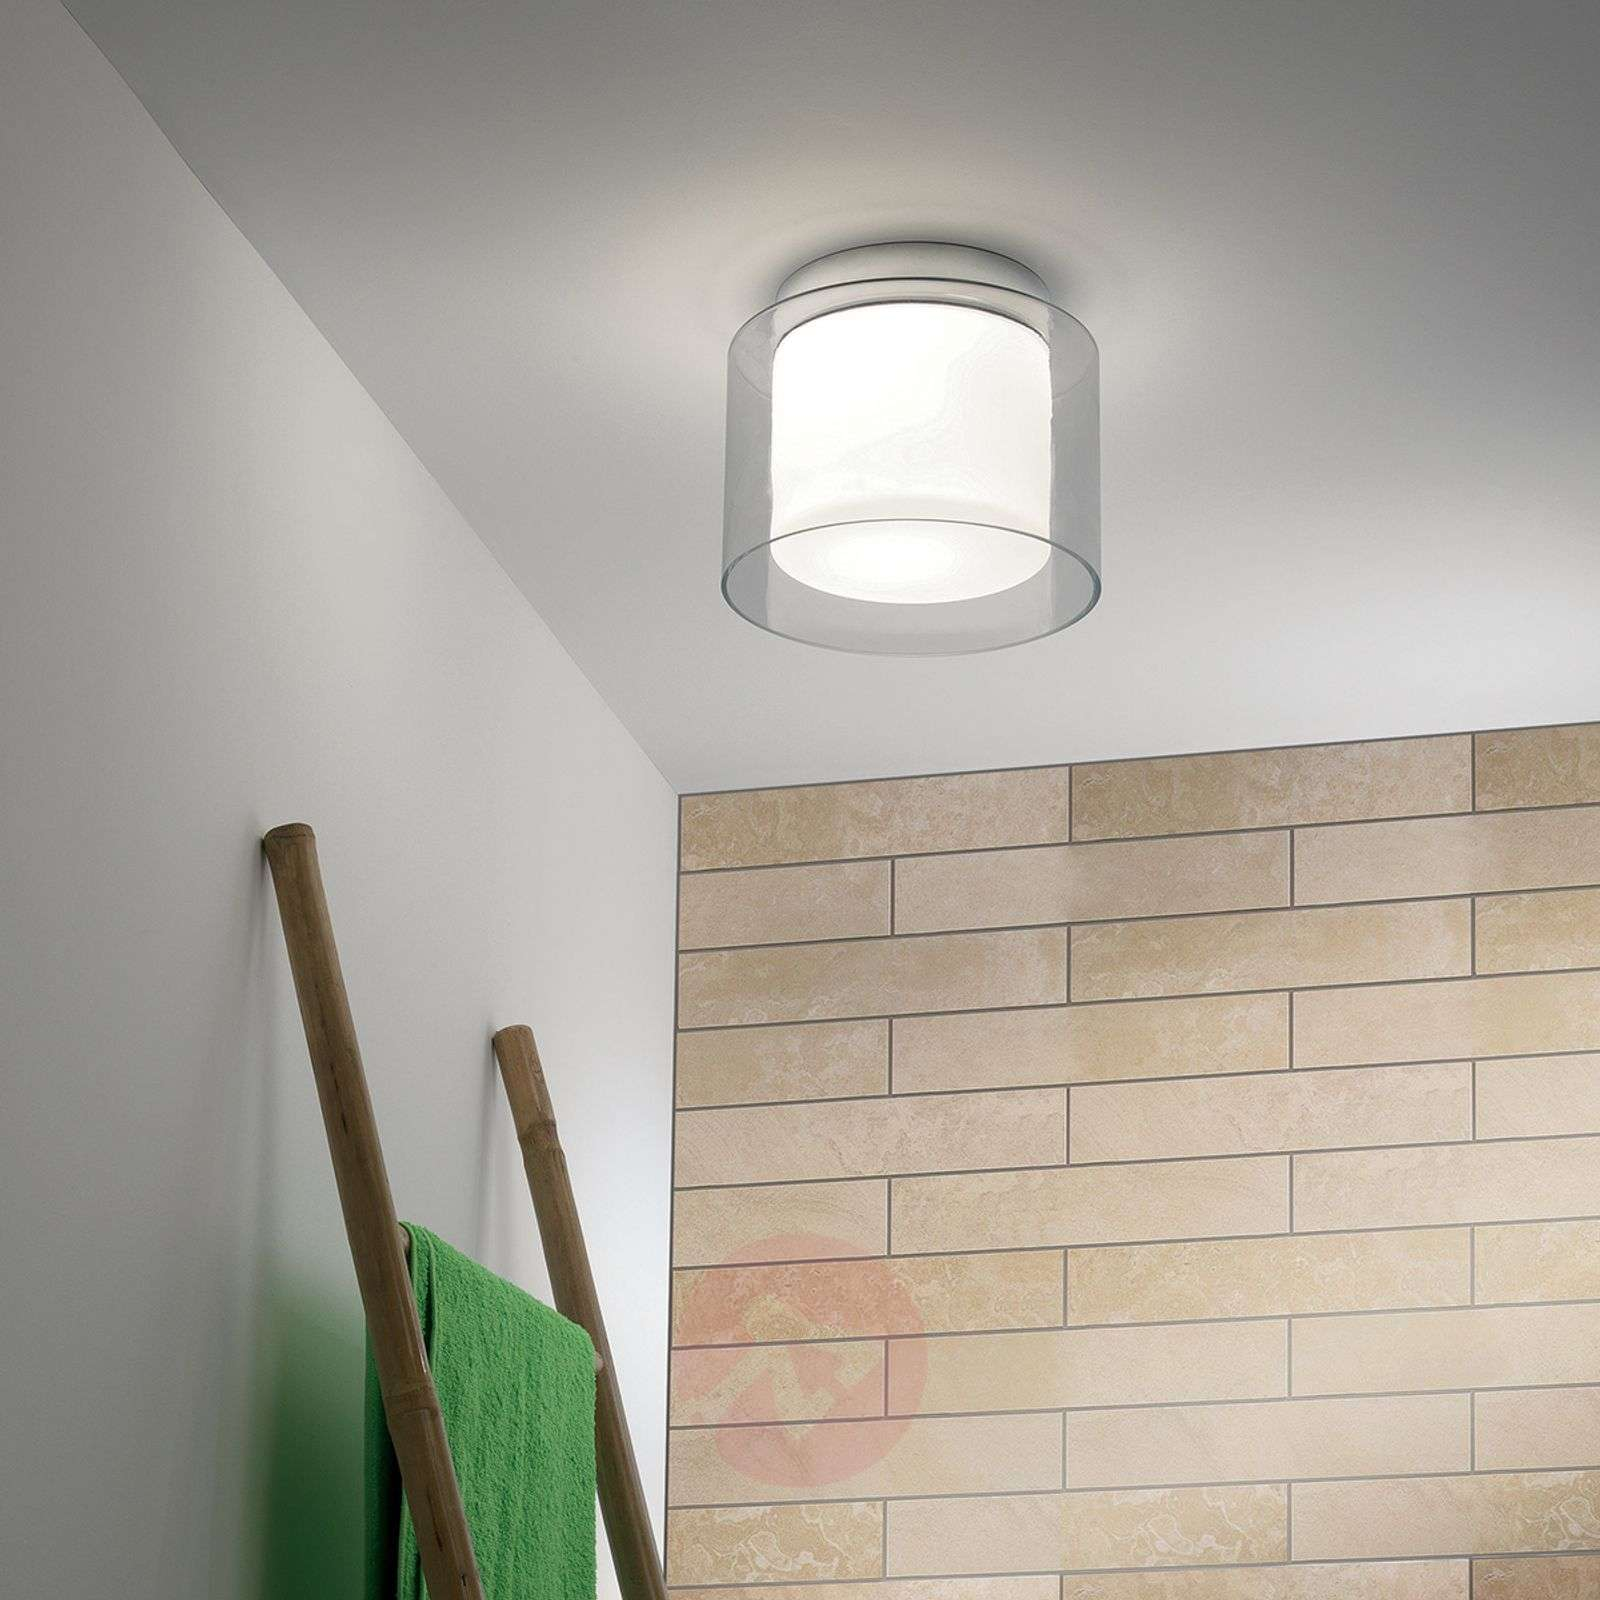 Double glazed ceiling light AREZZO-1020391-02